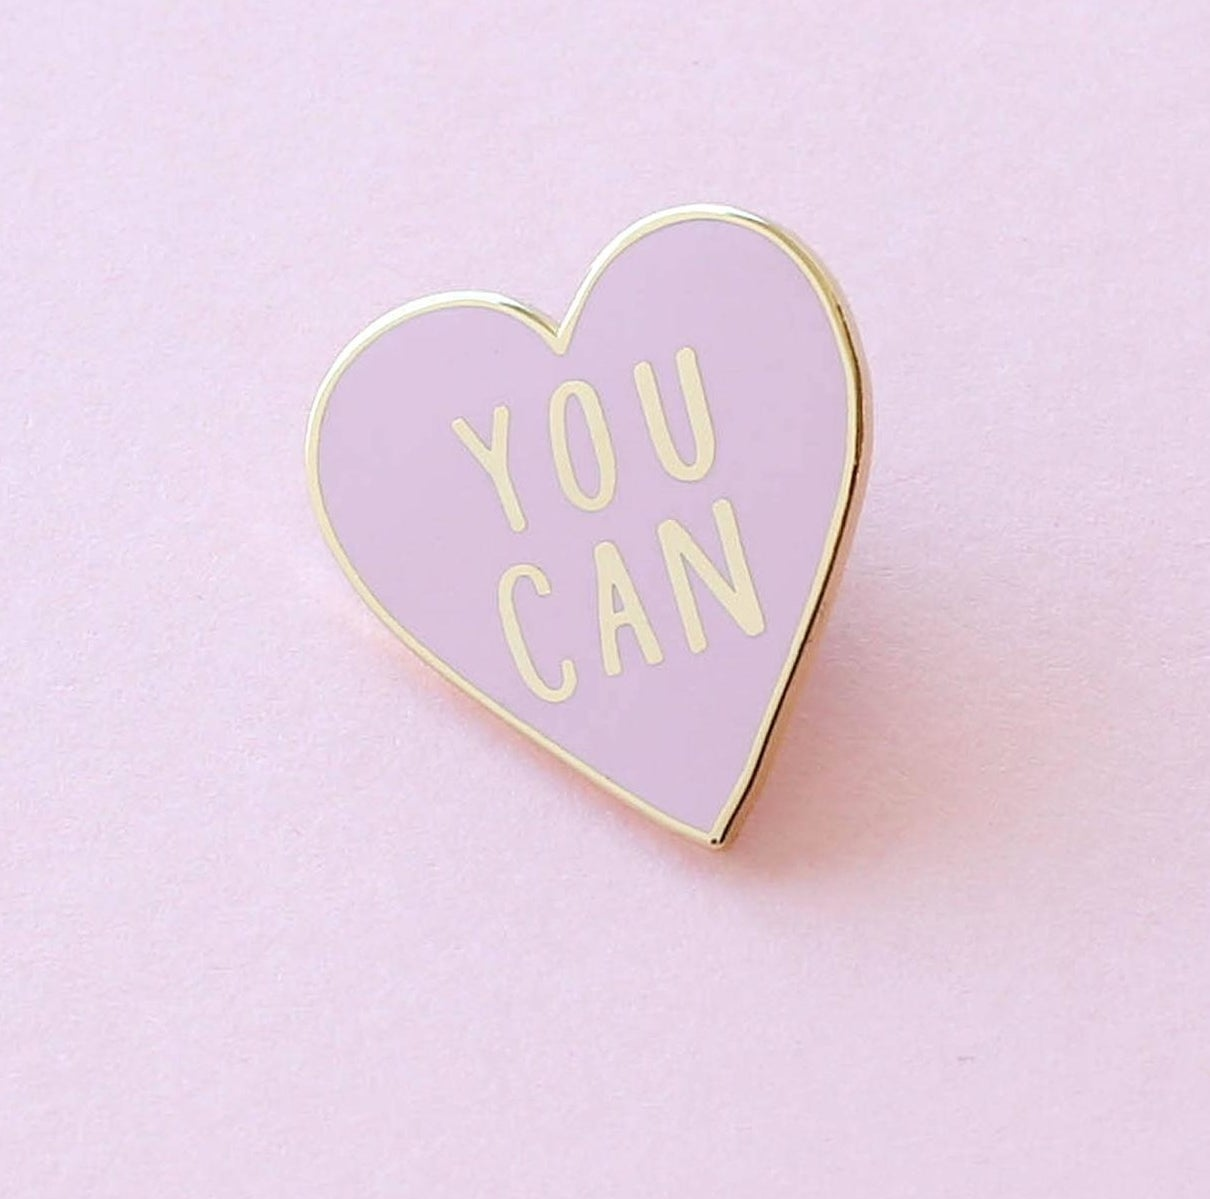 """A pink, heart-shaped enamel pin that says, """"You can"""""""